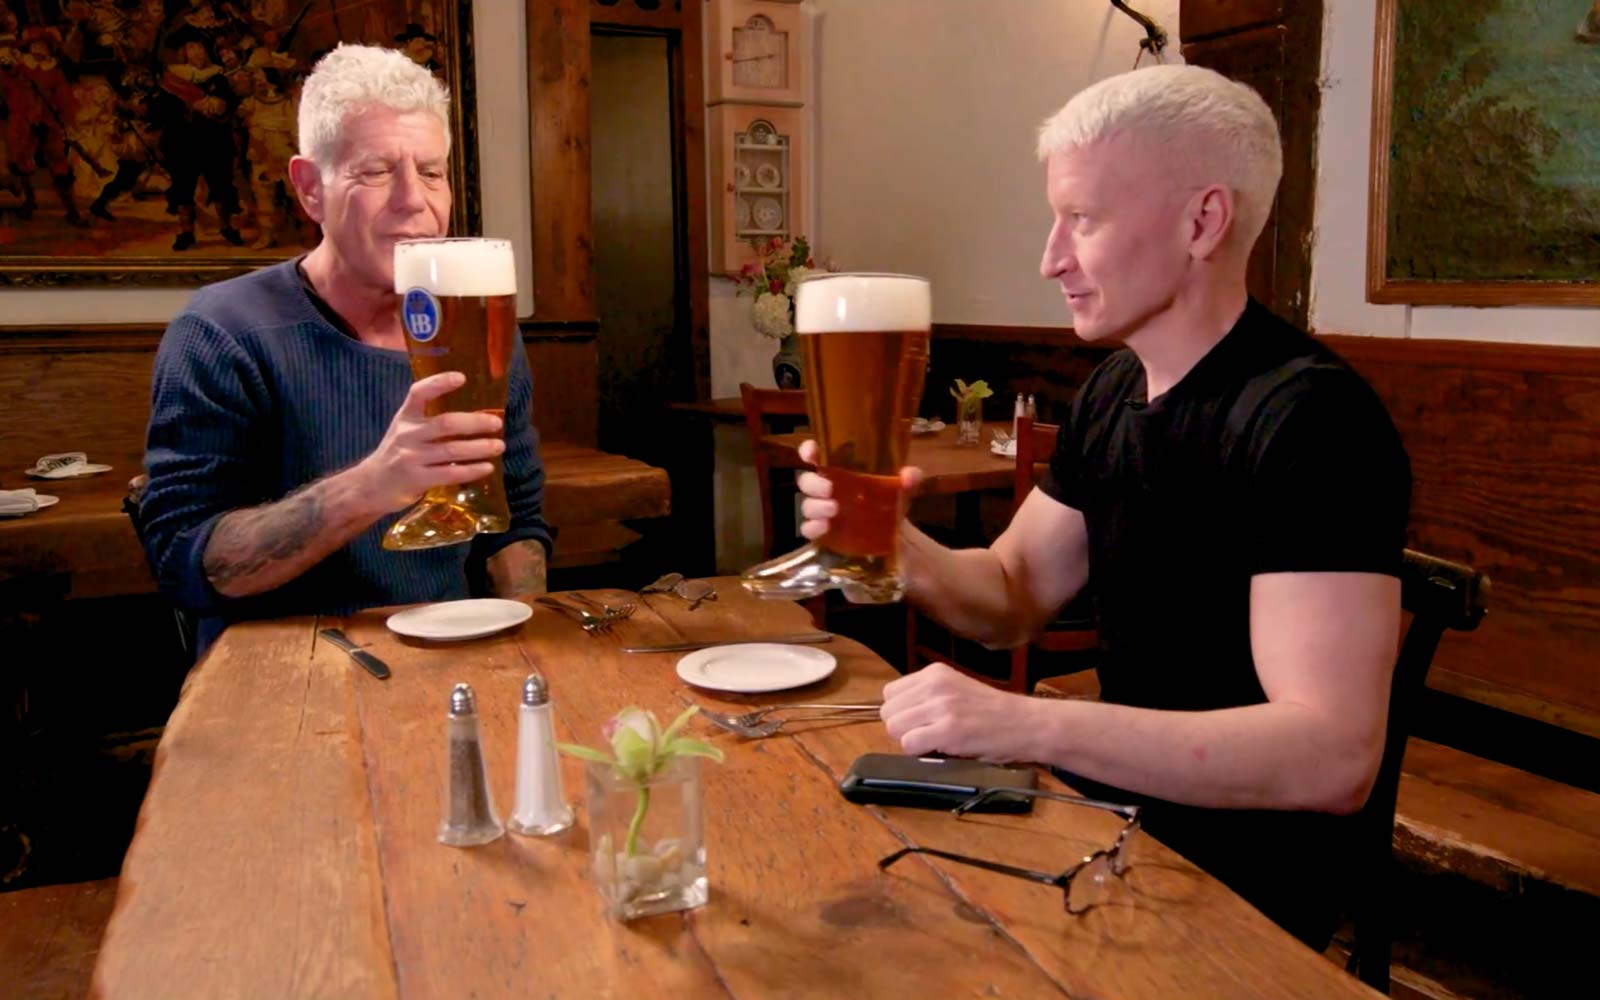 Anthony Bourdain Makes Anderson Cooper Look Like a Total Dork in Hilarious Video